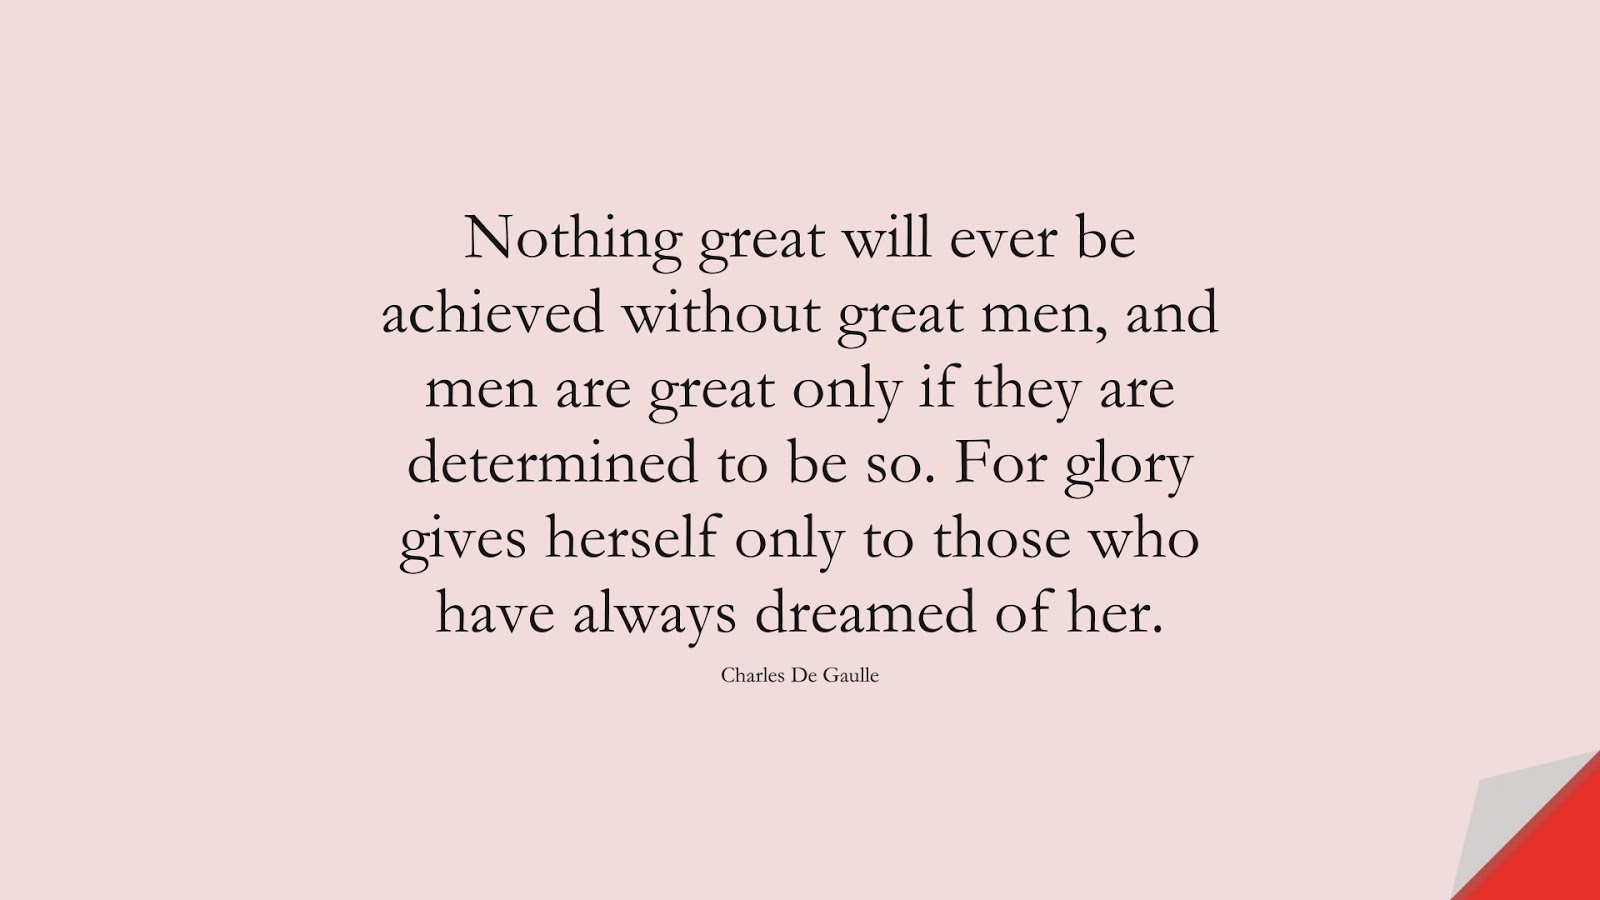 Nothing great will ever be achieved without great men, and men are great only if they are determined to be so. For glory gives herself only to those who have always dreamed of her. (Charles De Gaulle);  #MotivationalQuotes